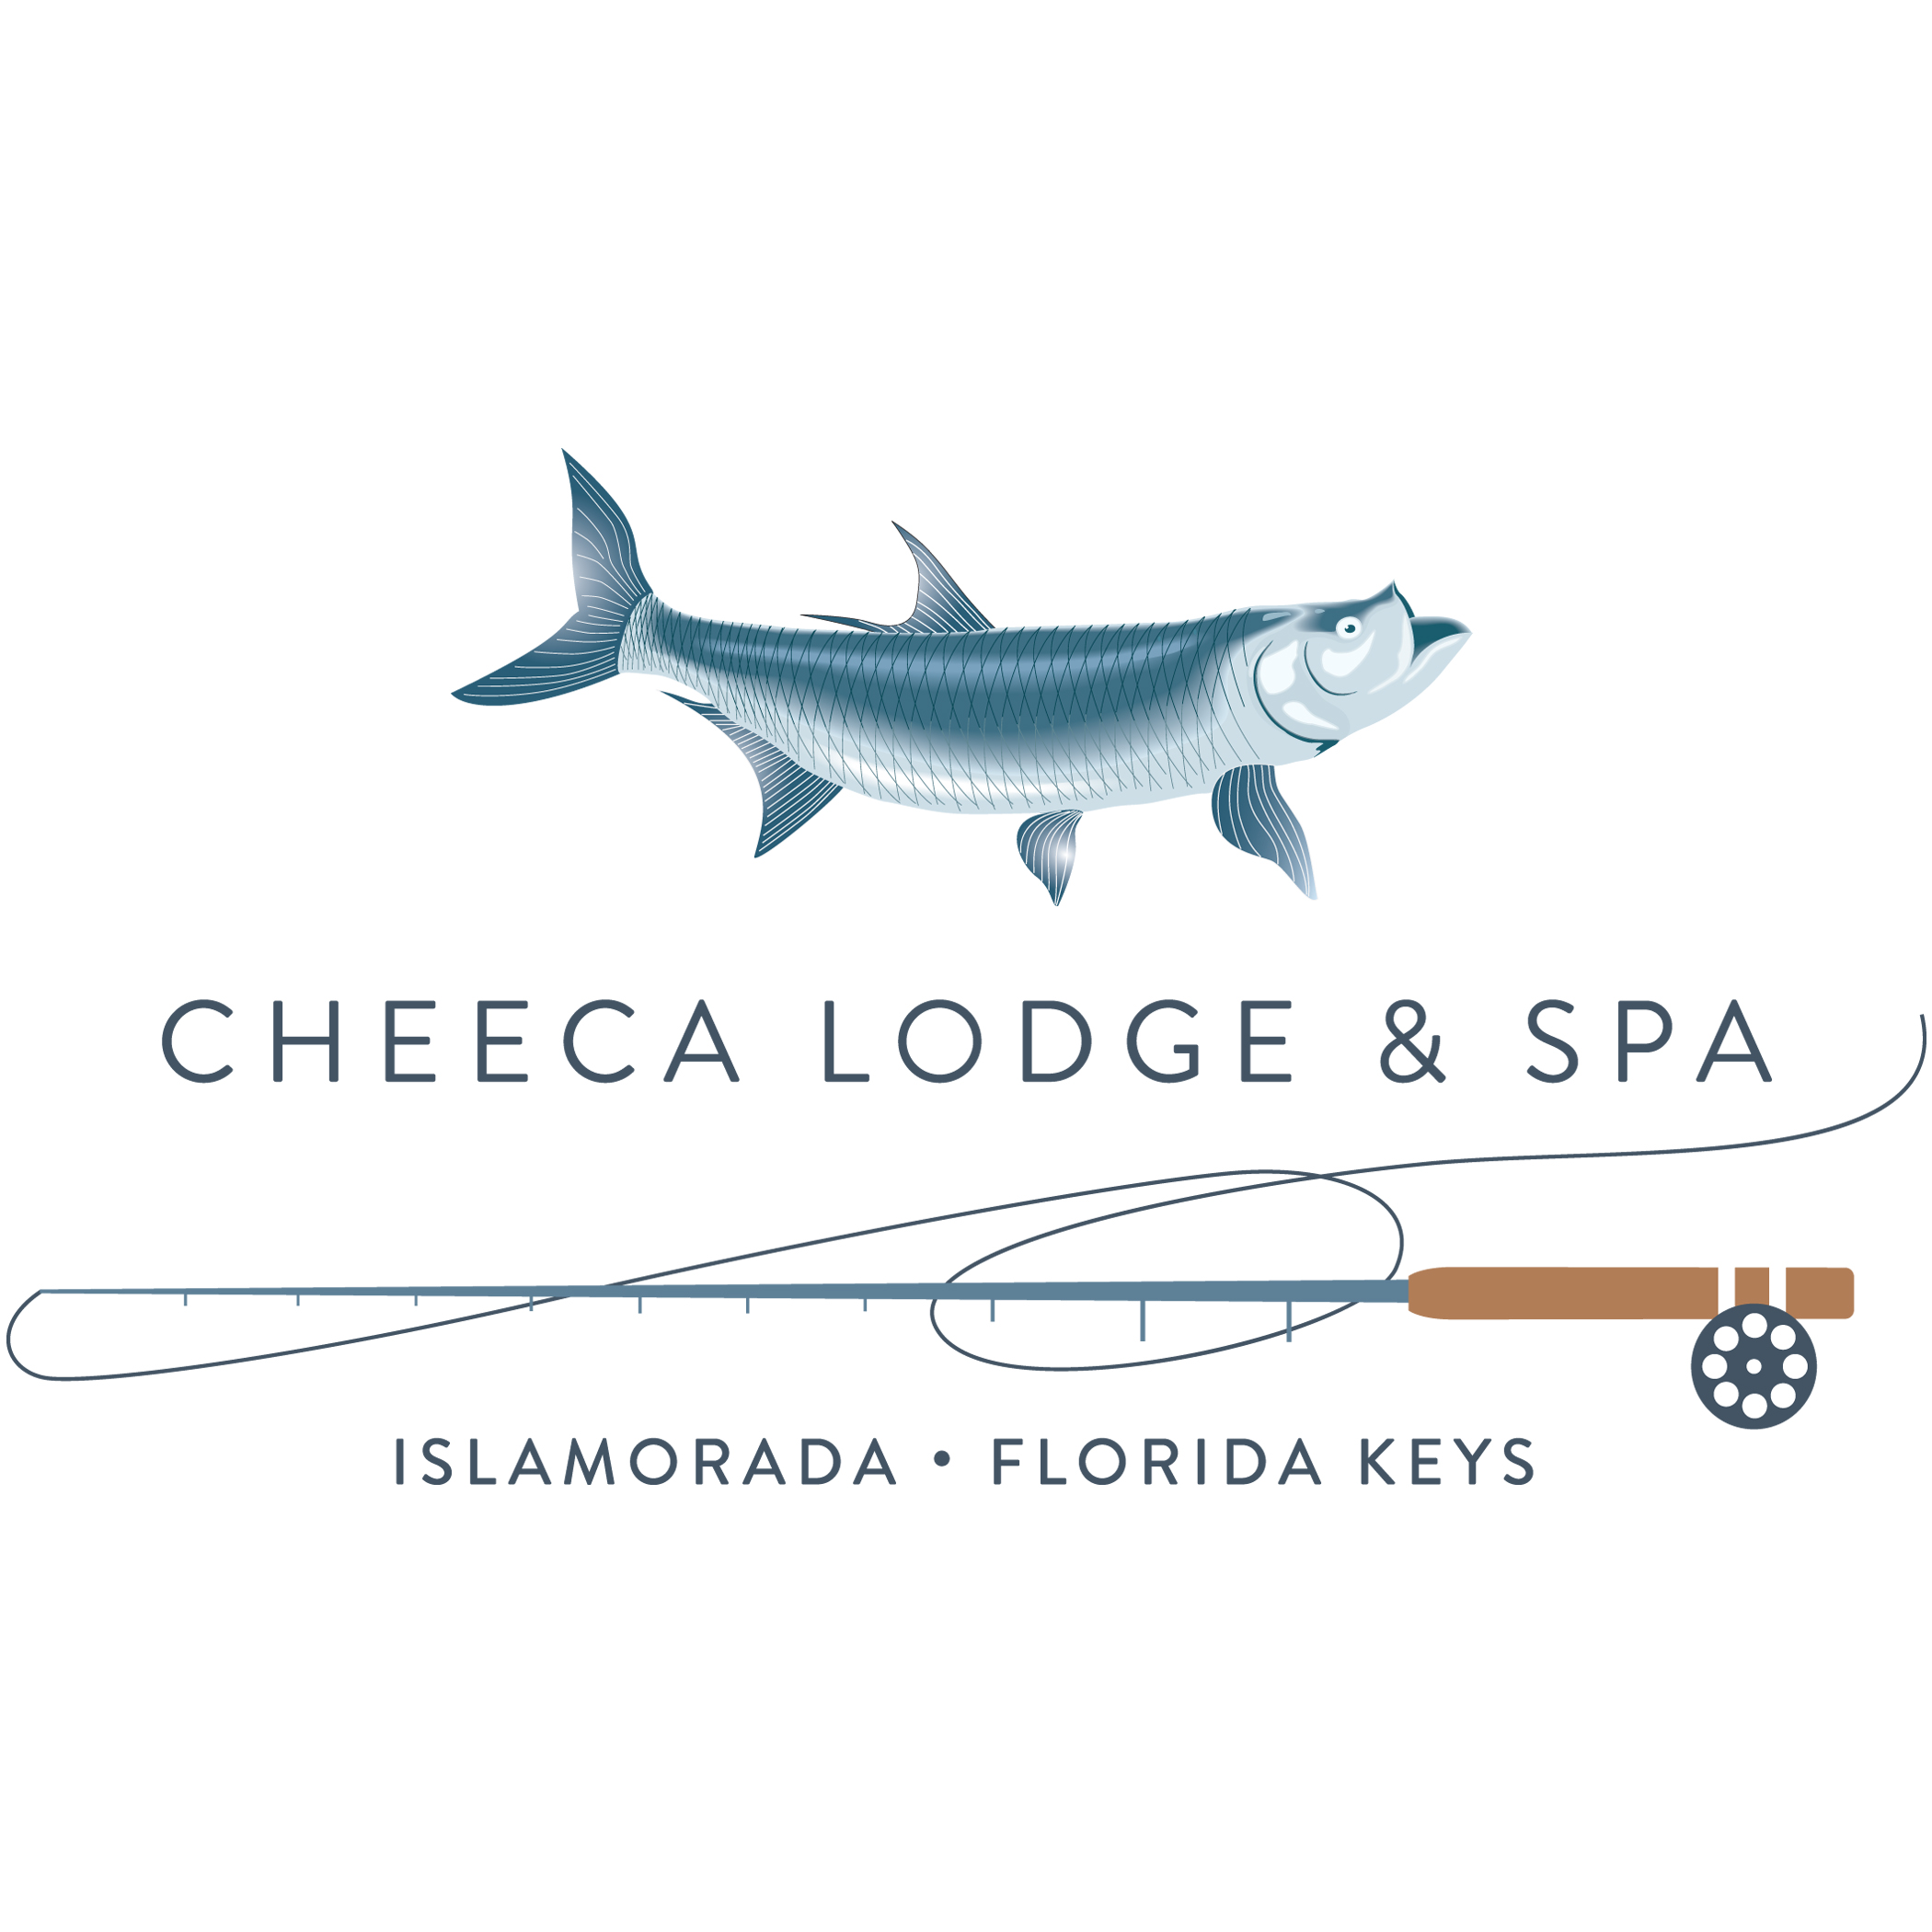 Cheeca Lodge & Spa image 9